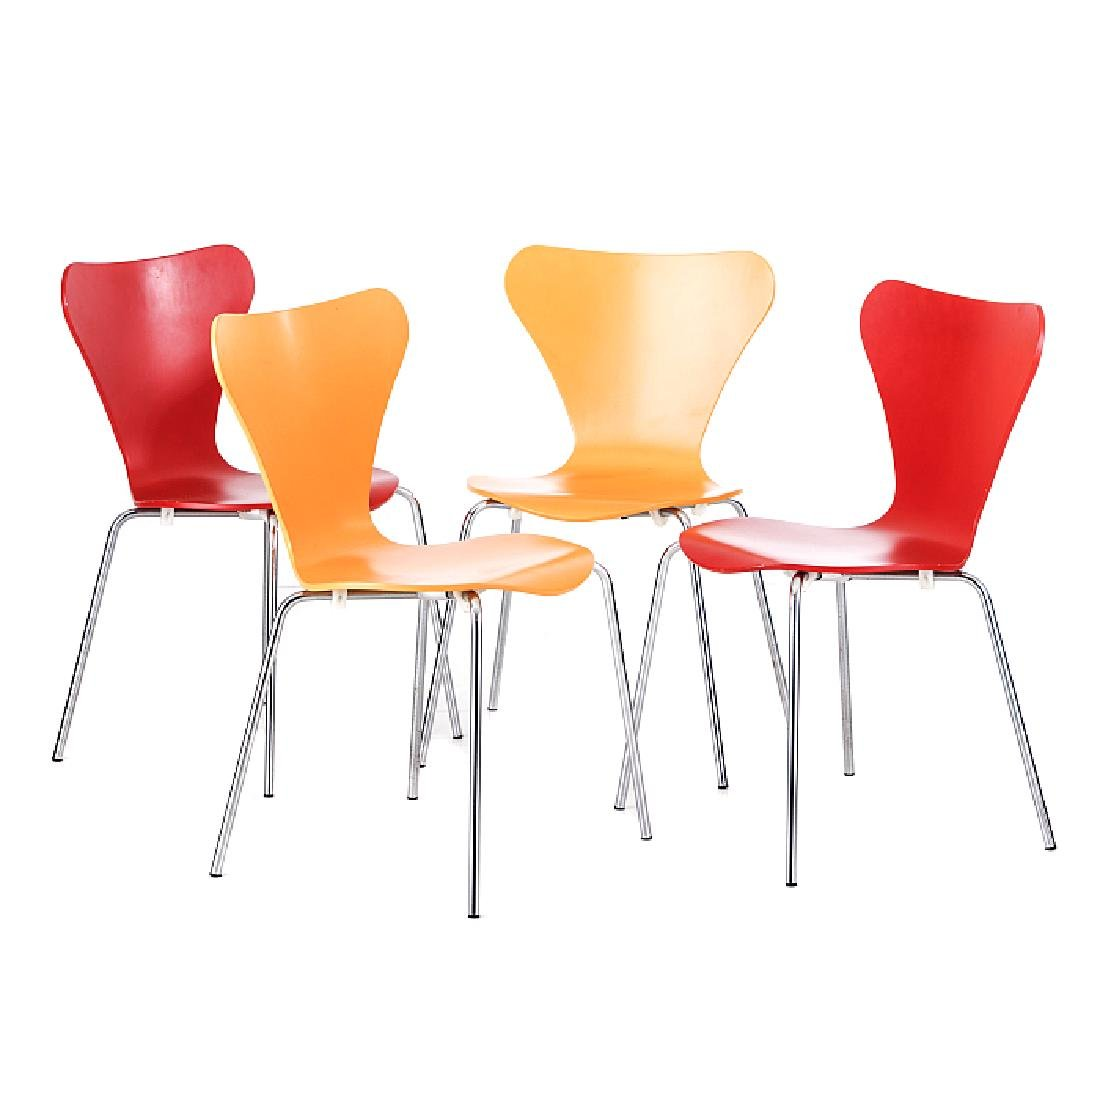 "After ARNE JACOBSEN (1902-1971) - four ""Serie 7"" chairs"